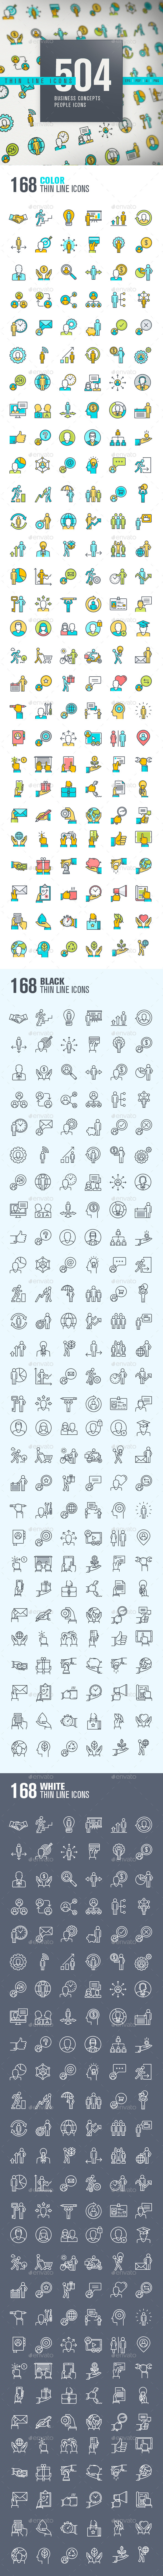 Thin Line People Icons - People Characters